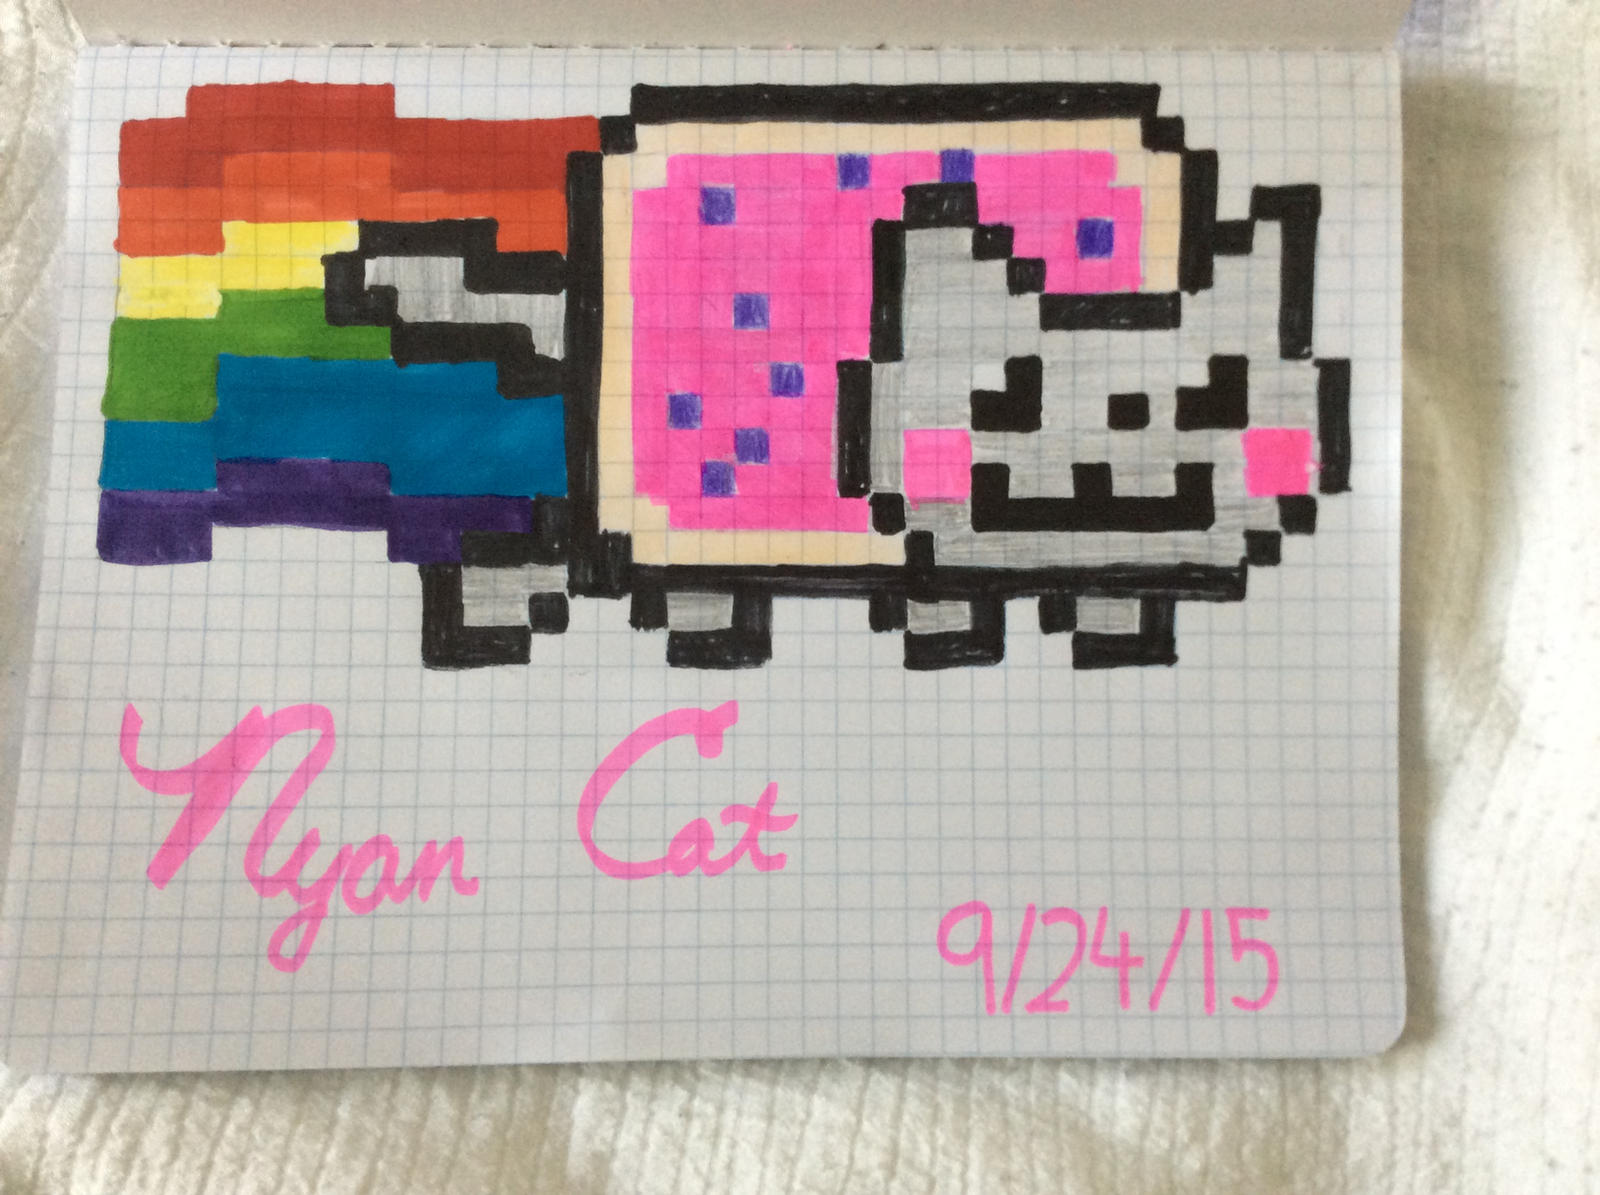 Nyan Cat drawing on graph paper by Bonniethesniperman on DeviantArt